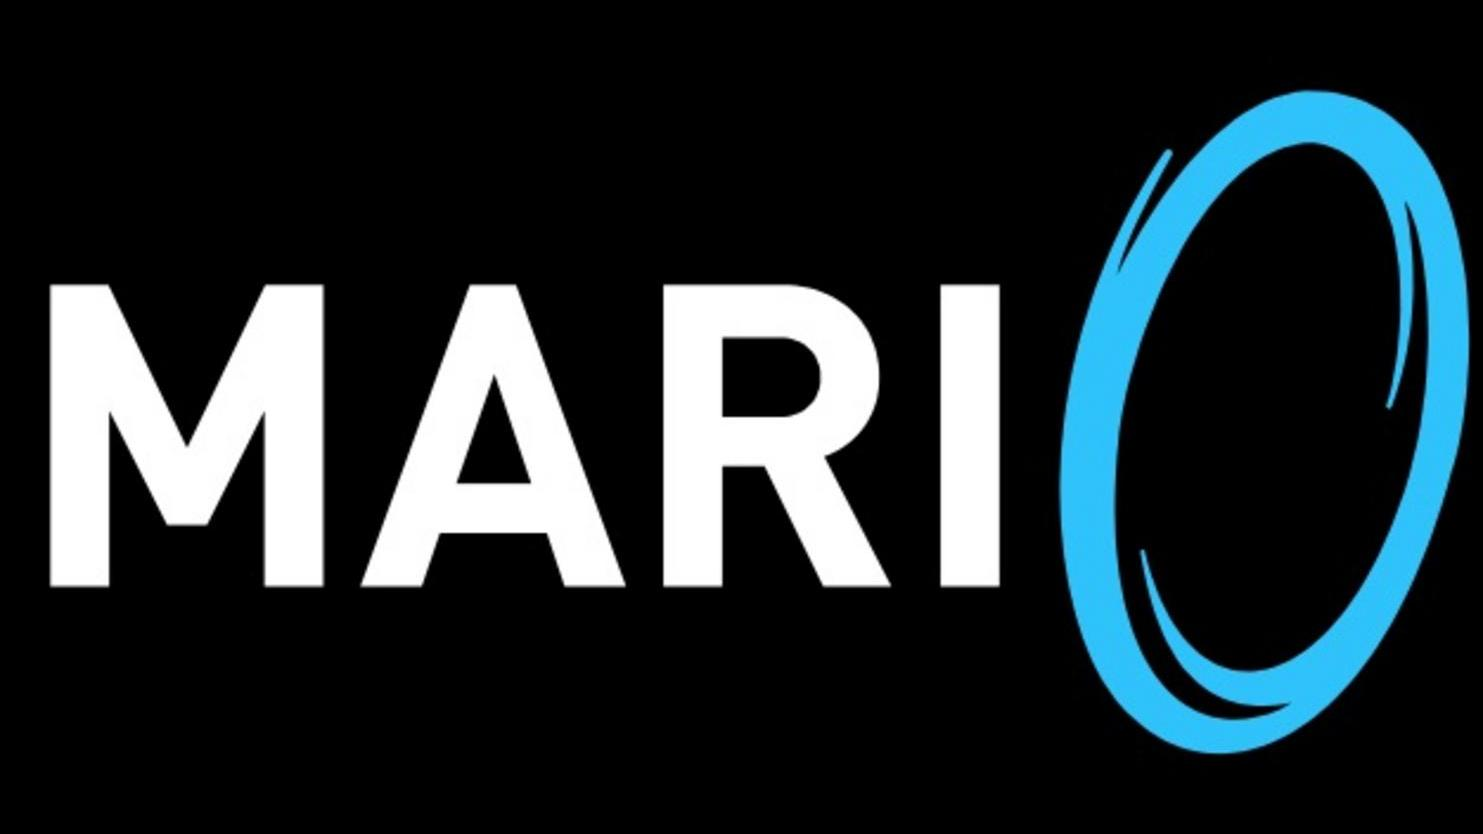 Portal Mari0 Game Demo - By Stabyourself.net